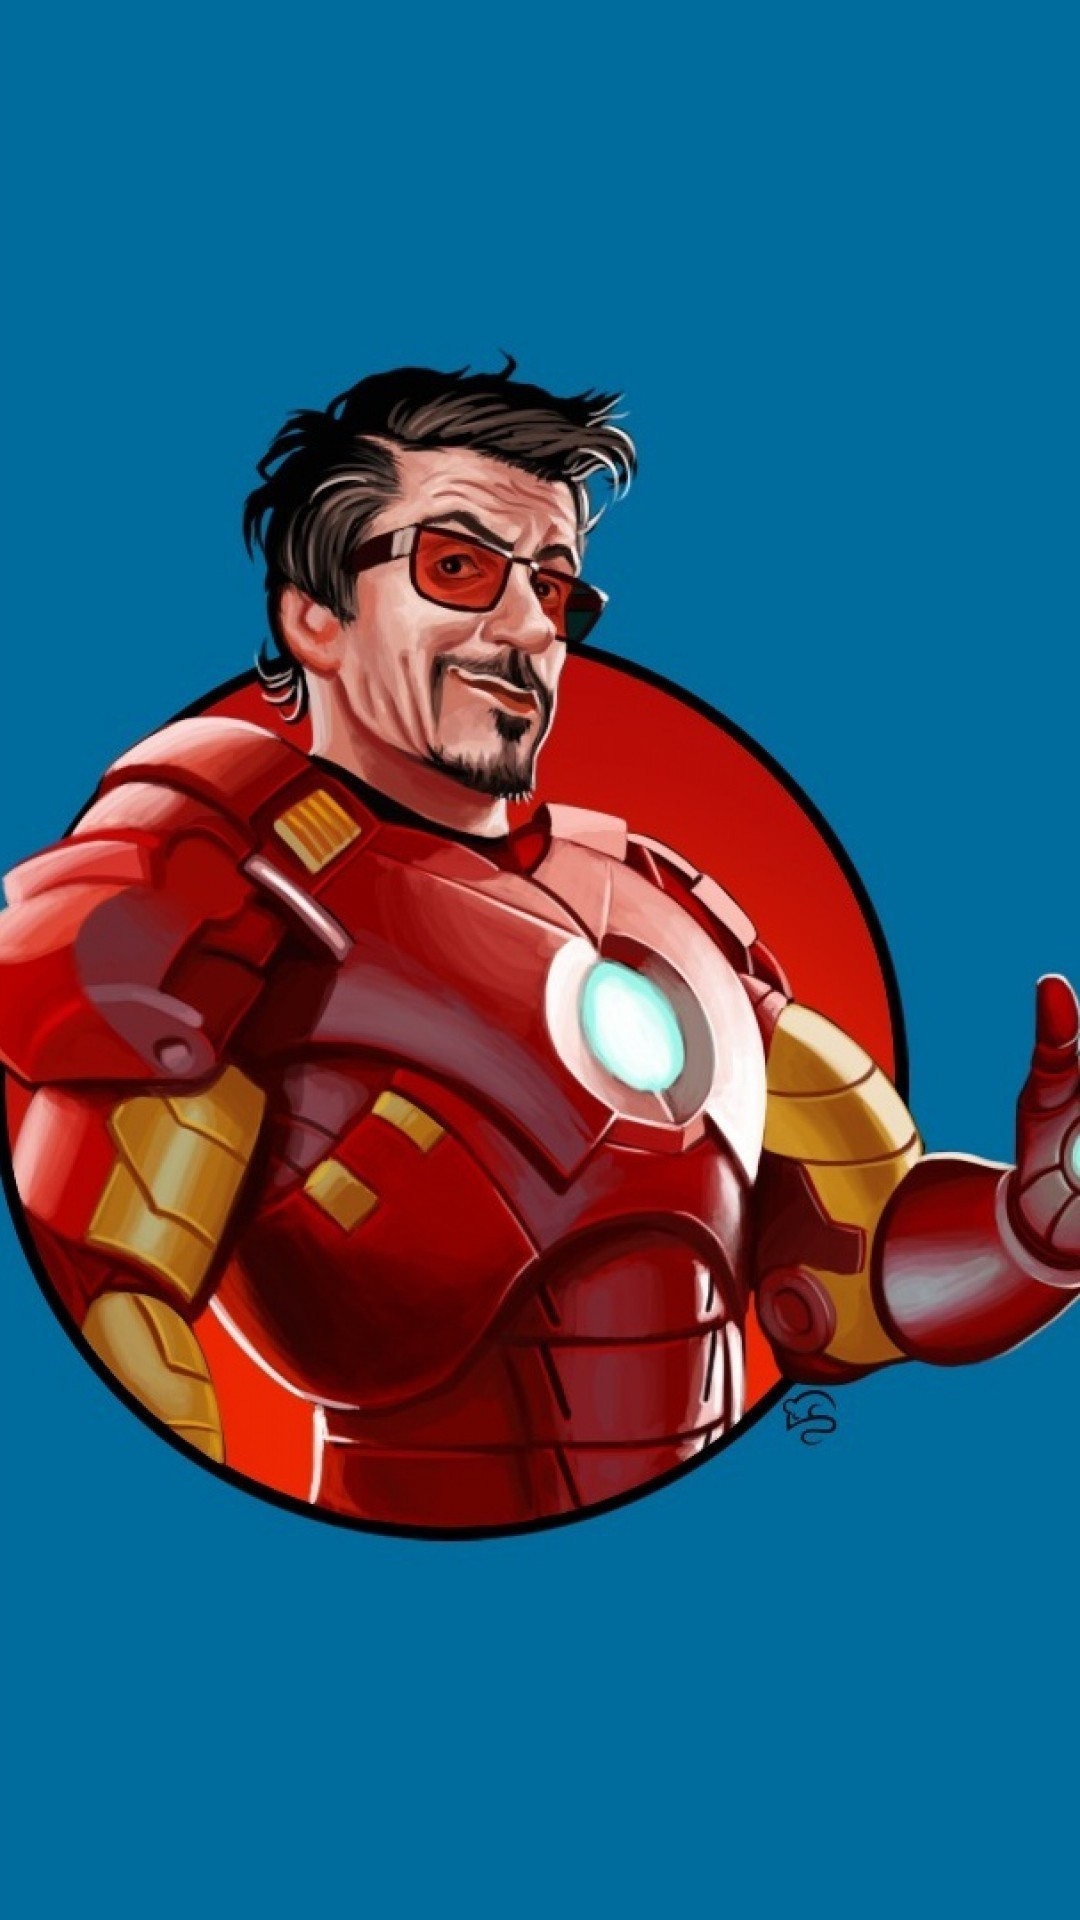 Res: 1080x1920, Tony Stark in Ironman suit. iPhone 7. Download 2